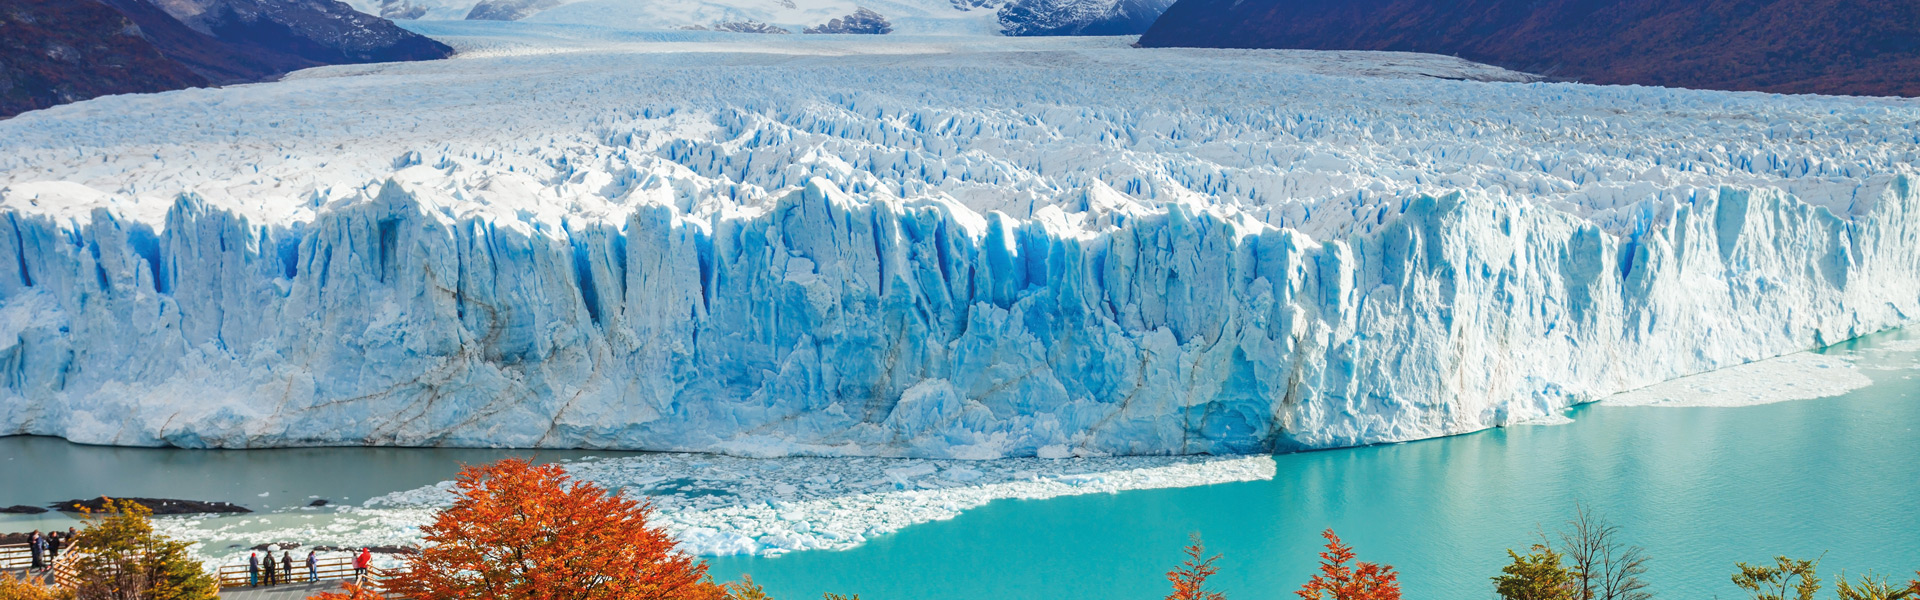 Argentina Adventure Tour | Wendy Wu Tours